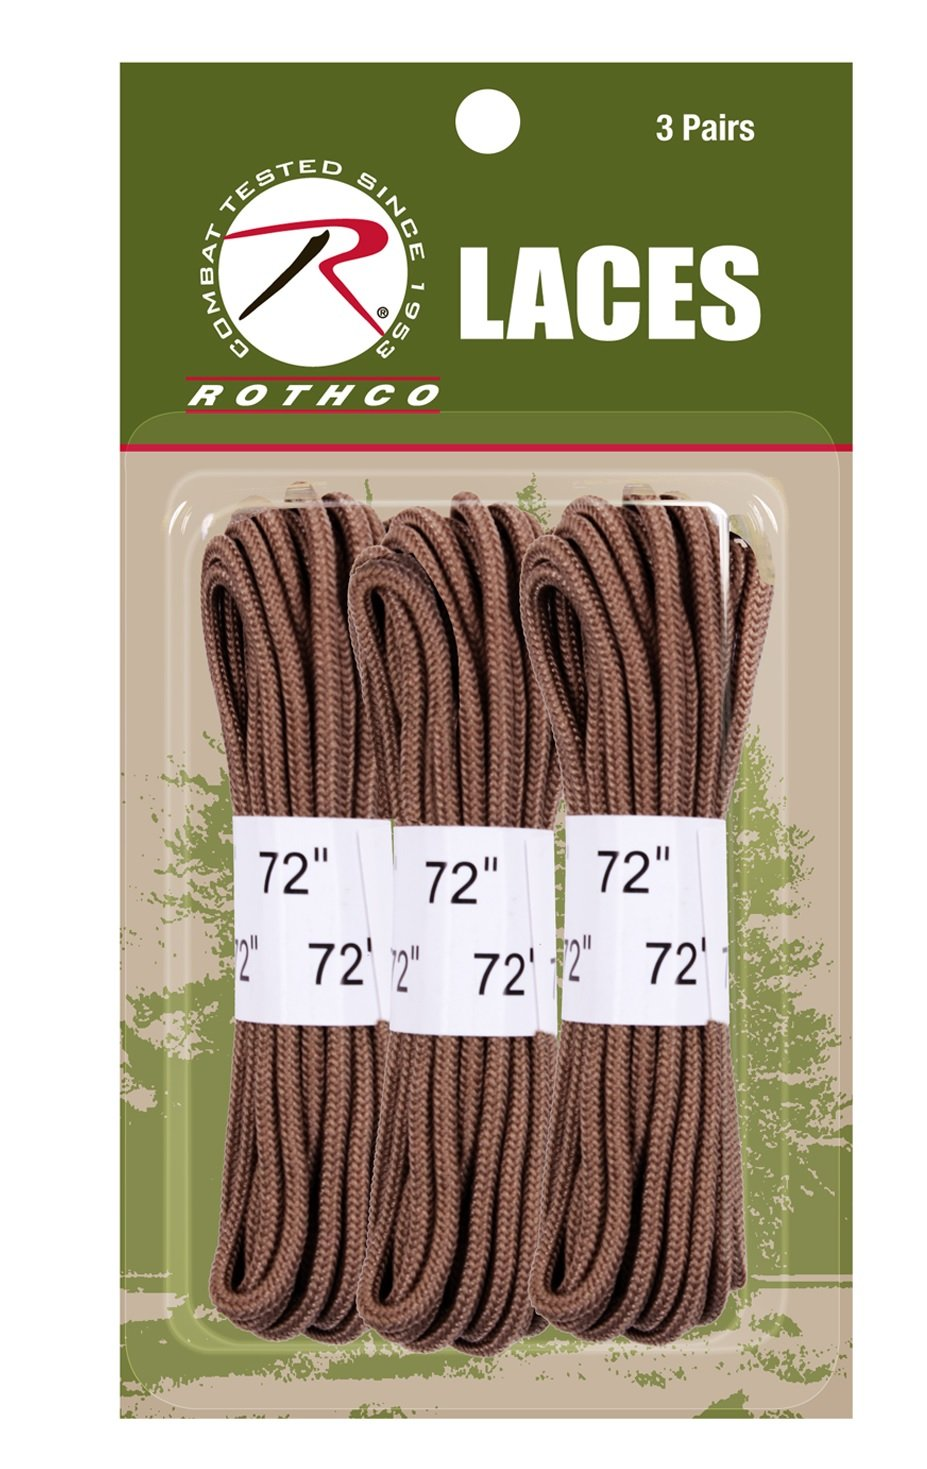 Rothco 72 Boot Laces - 3 Pack, Coyote Brown 6017